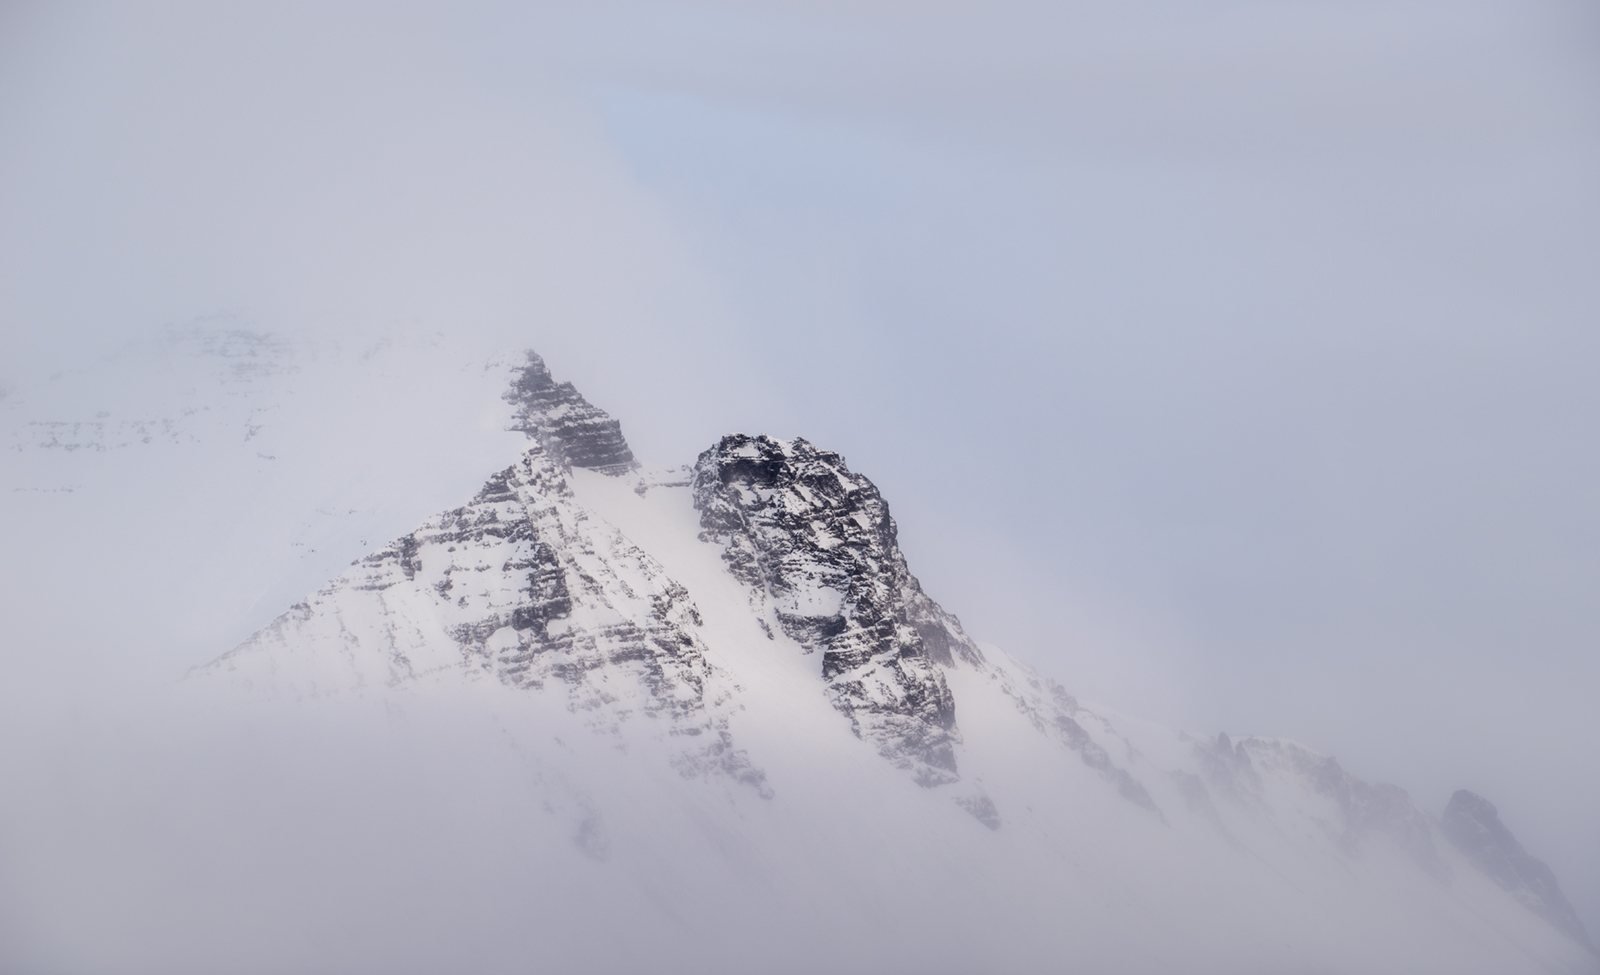 Mountain Peak, Sony A7R, Canon 70-200 f/2.8 at 135mm, ISO 100, 1/60s at f/8, Handheld. February. © Andrew Yu